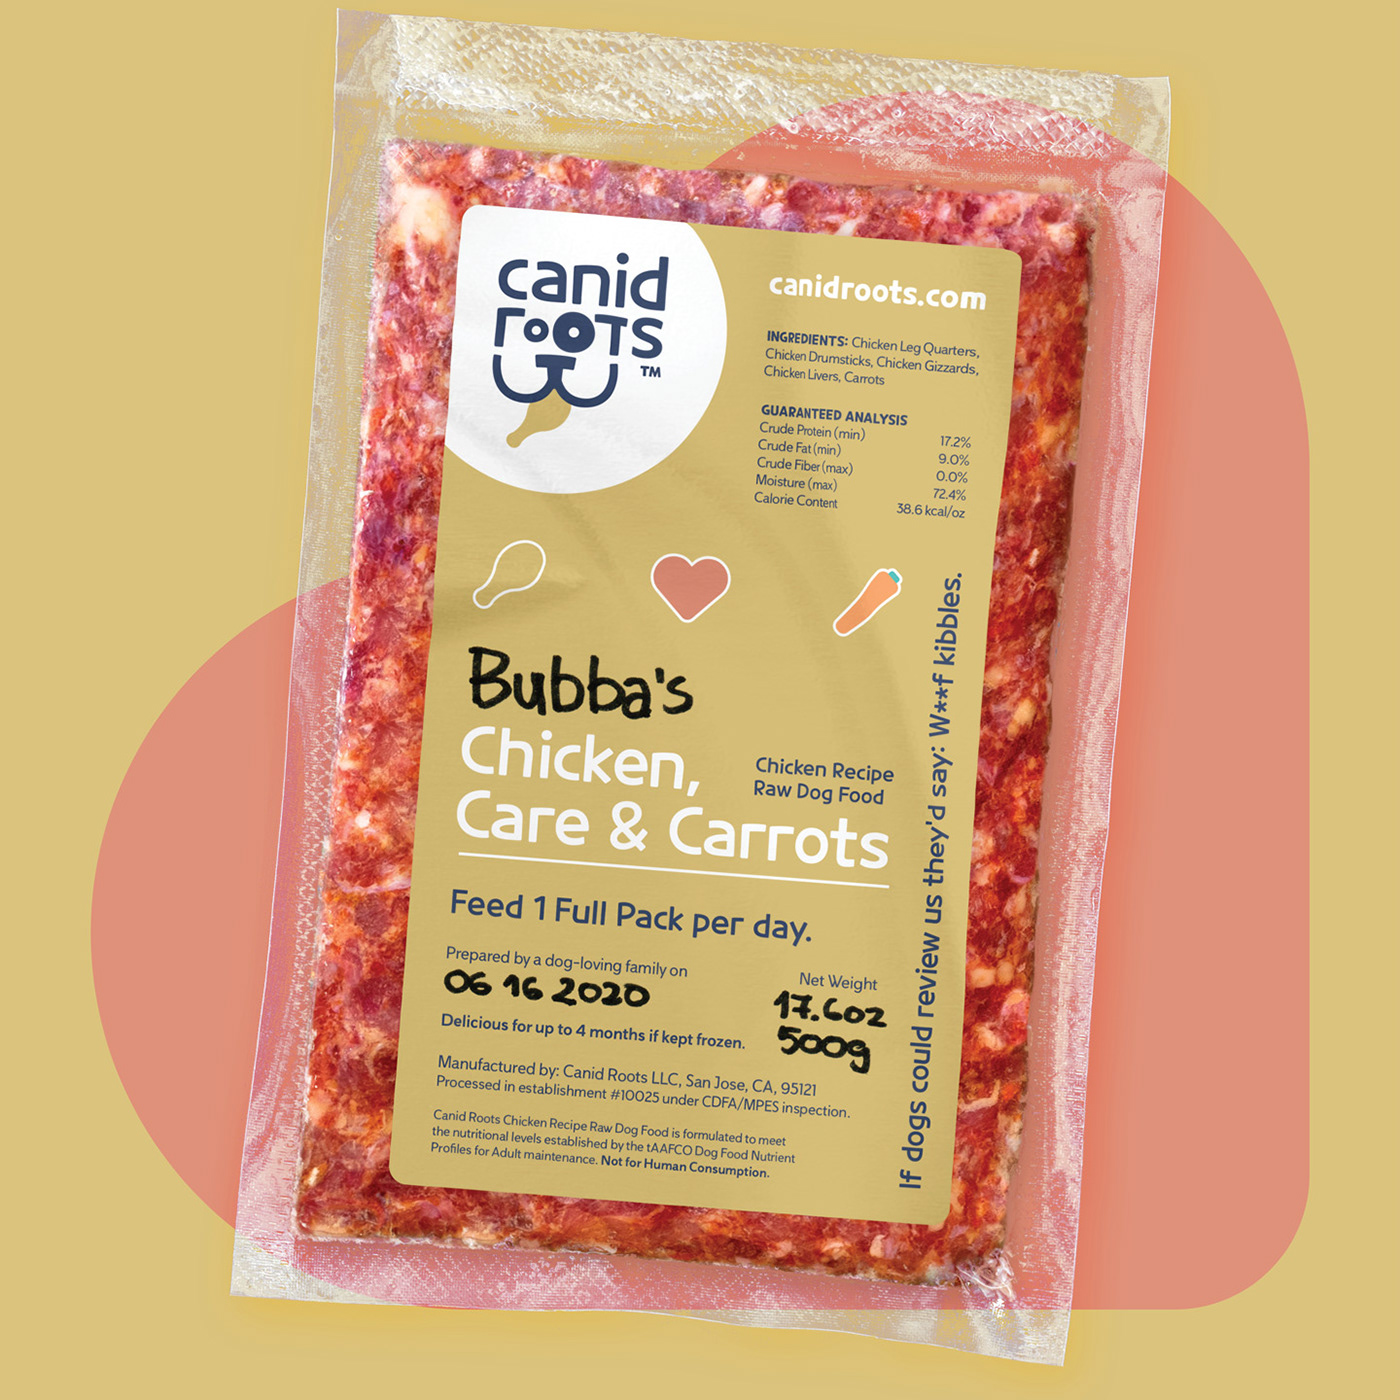 Image shows a mockup of the packaging label. The flavor name is Chicken, Care & Carrots.